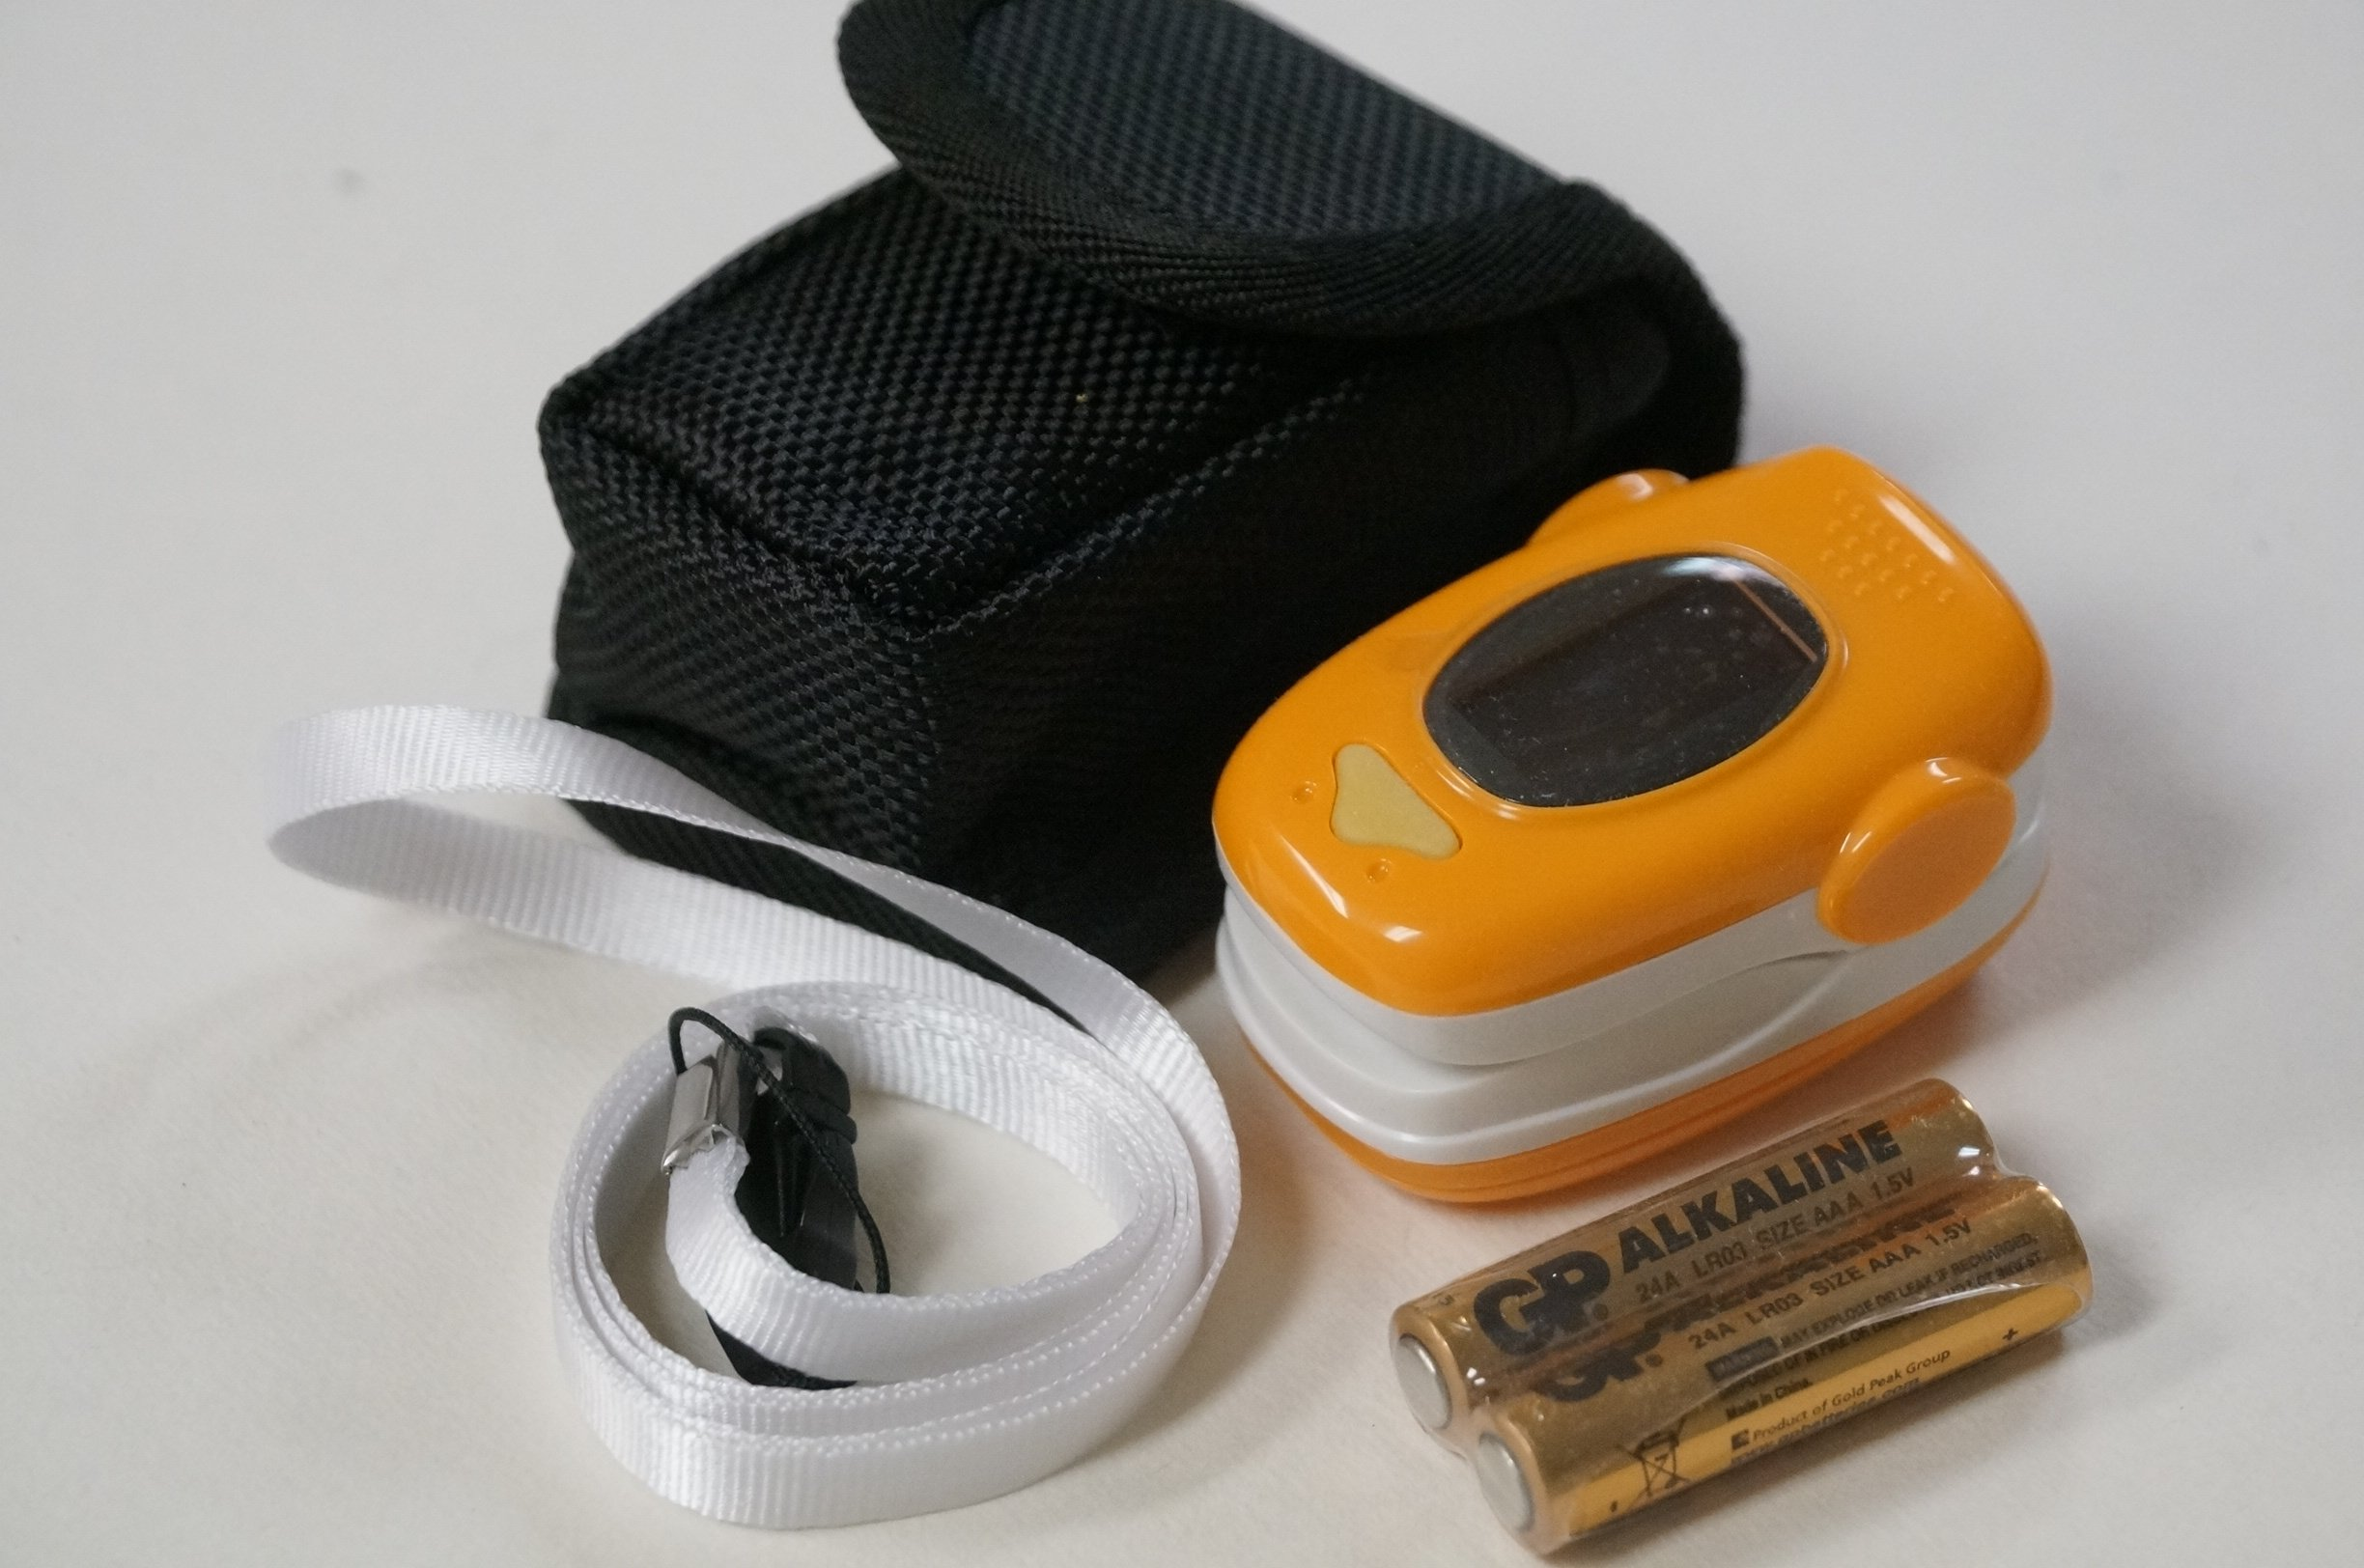 EMS70A Finger Pulse Oximeter with Carry Case and Neck/wrist Cord (ORANGE)